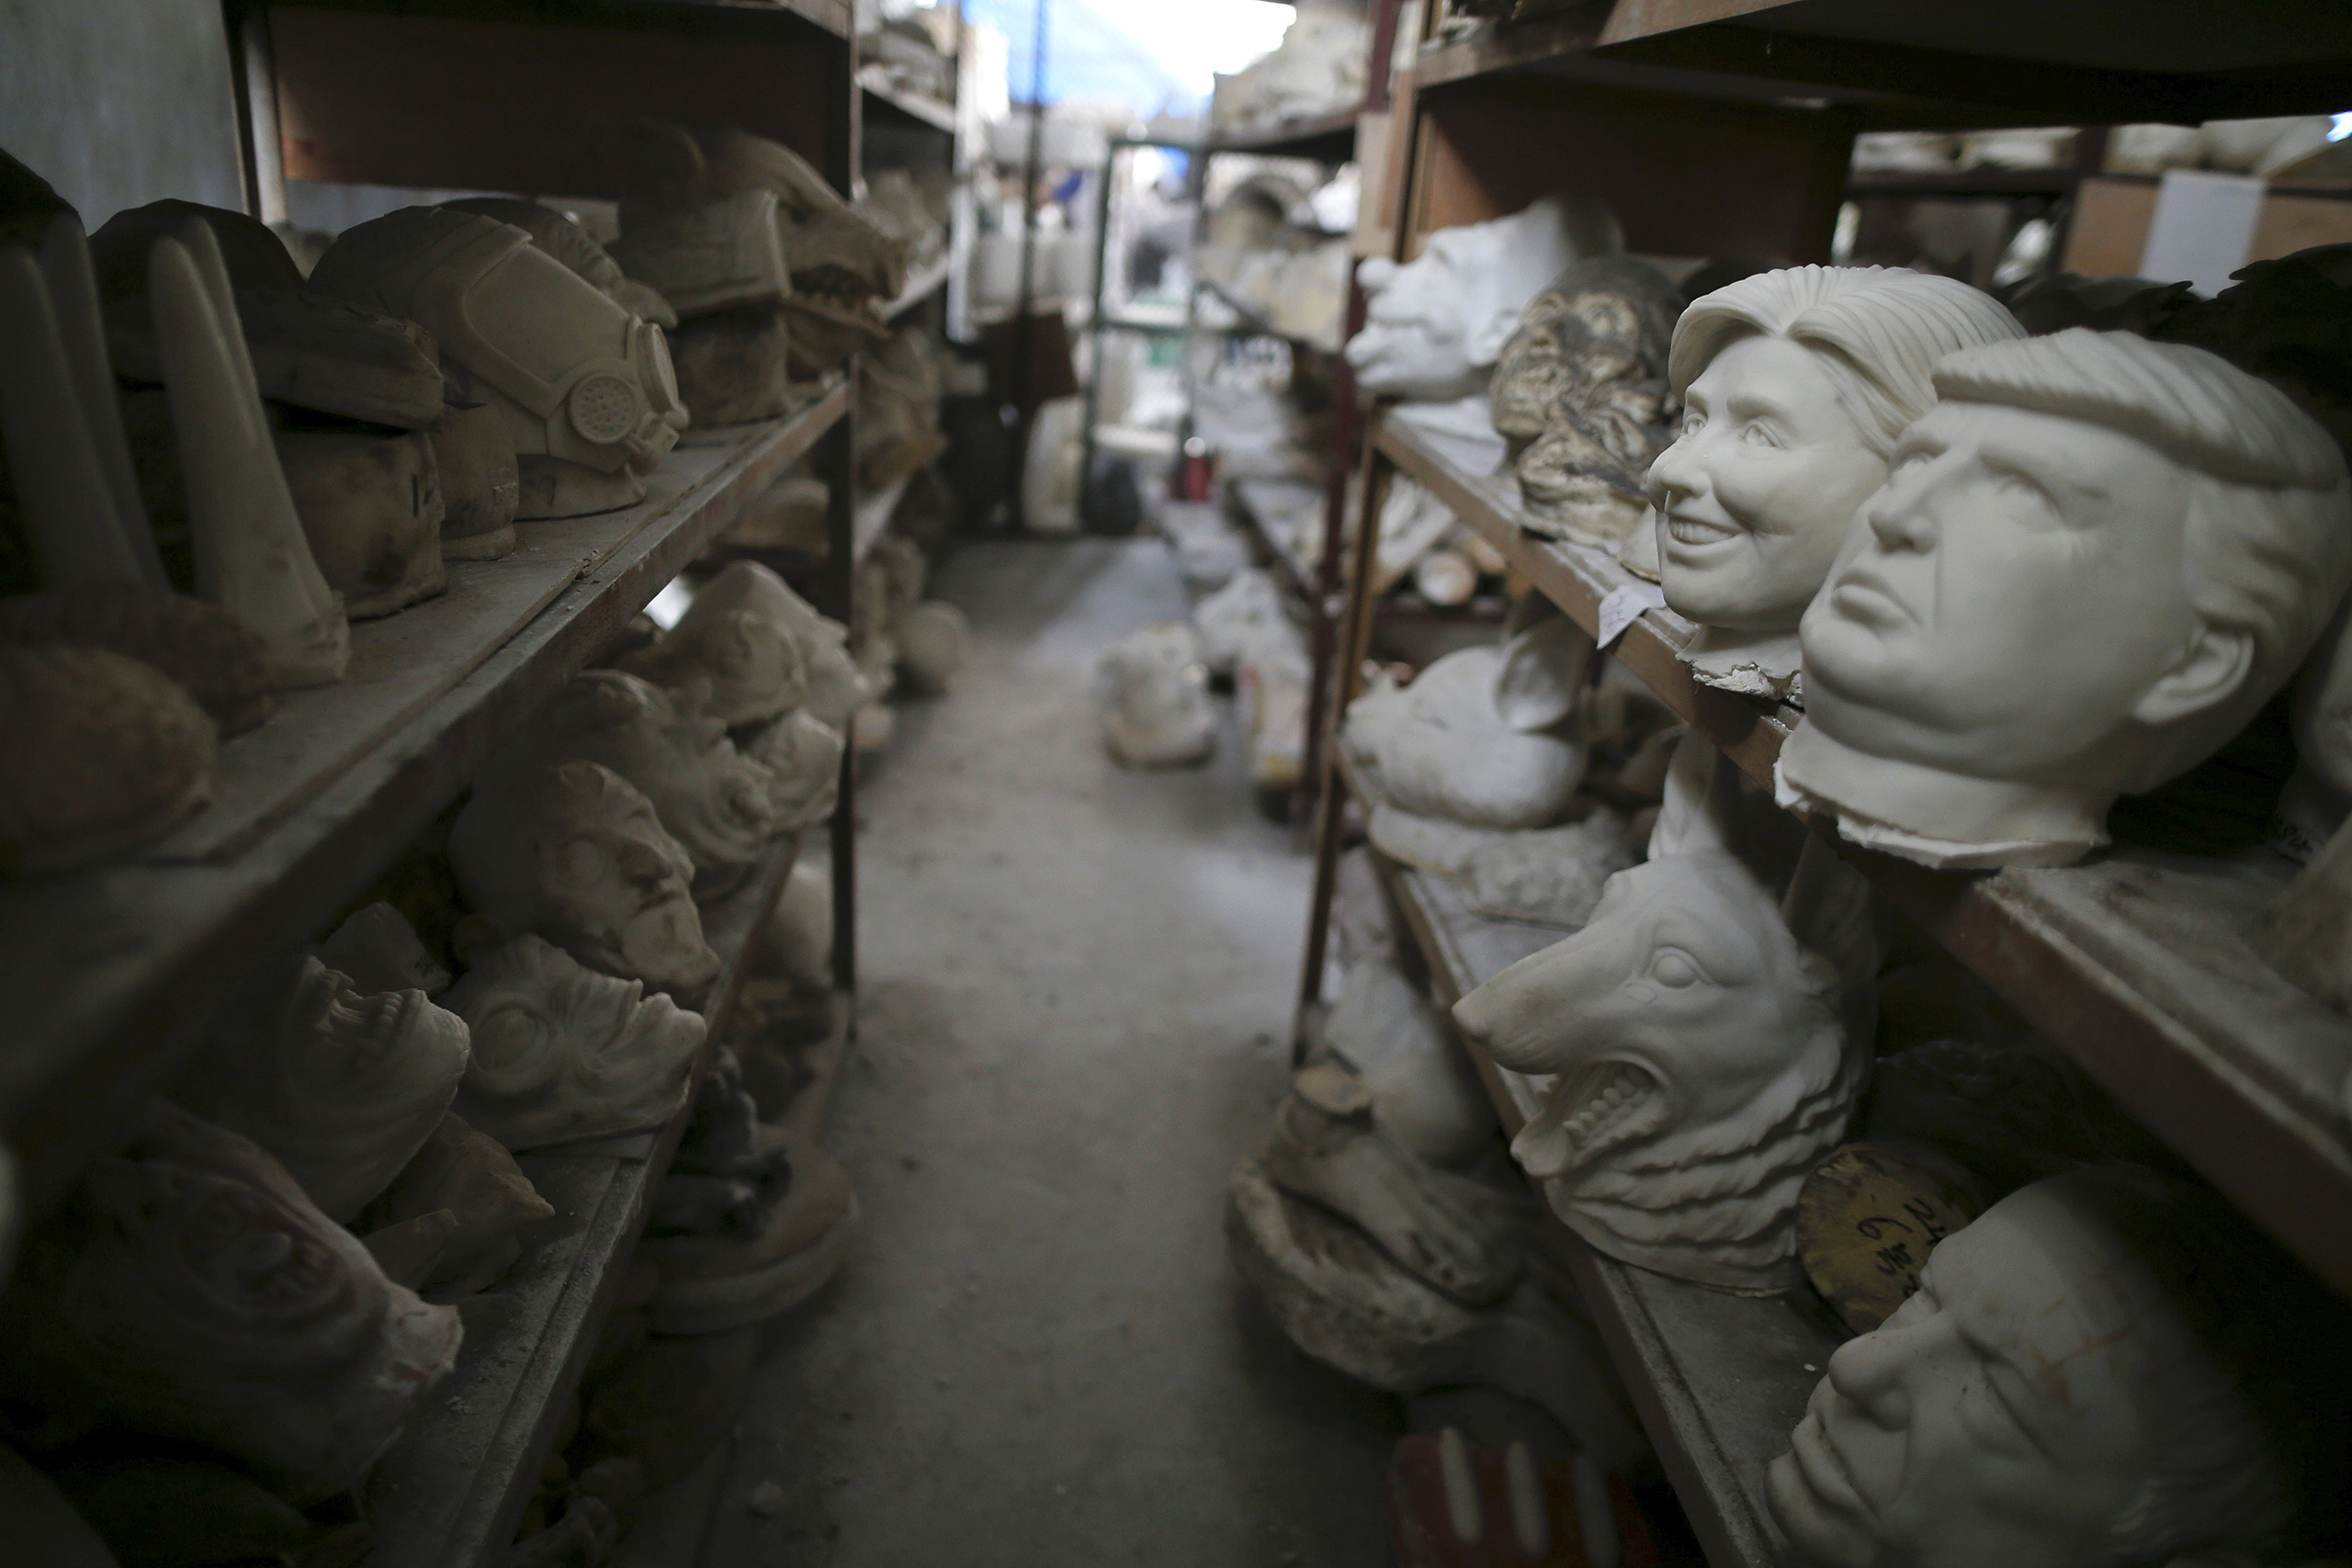 Molds for different masks, including those of Democratic presidential candidate Hillary Clinton and Republican presidential candidate Donald Trump, sit on shelves at Jinhua Partytime Latex Art and Crafts Factory in Jinhua, Zhejiang Province, China, May 25, 2016.